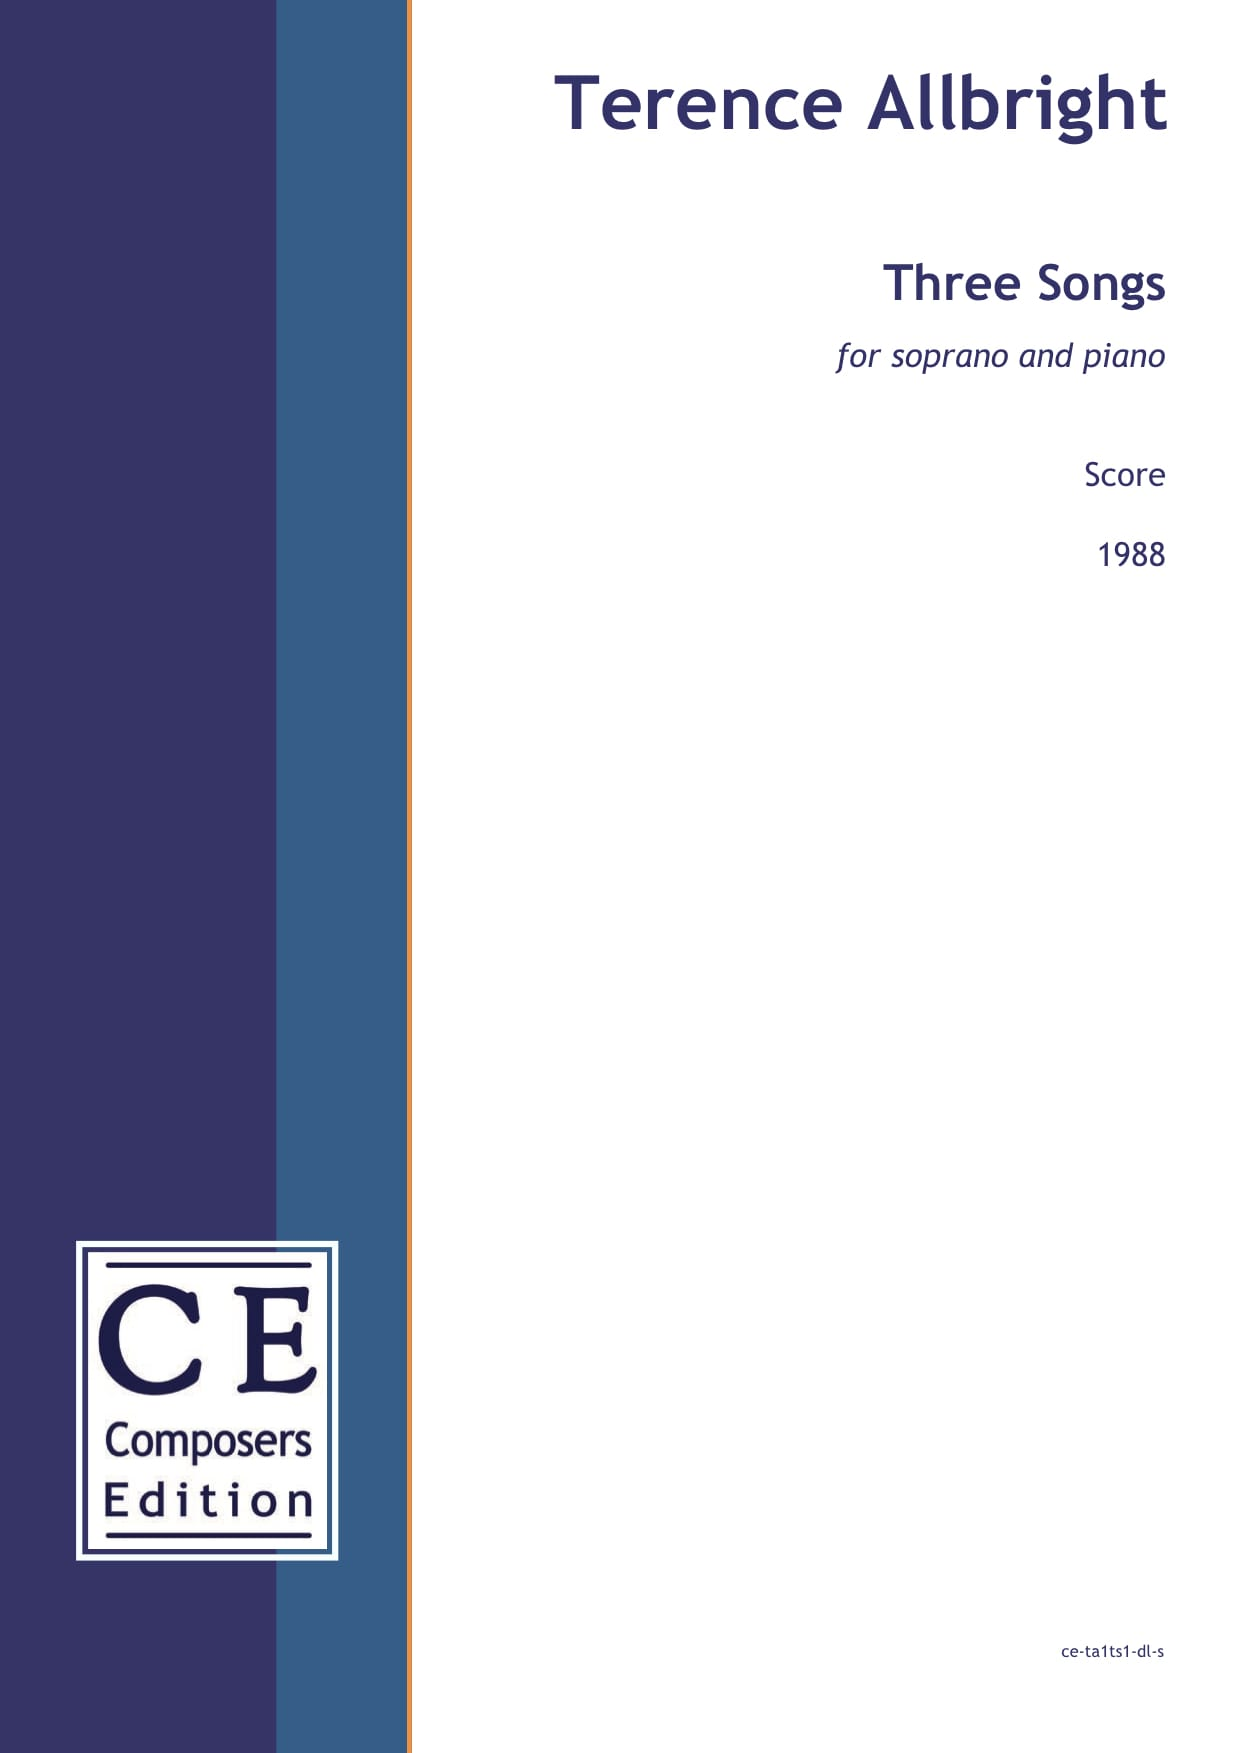 Terence Allbright: Three Songs for soprano and piano